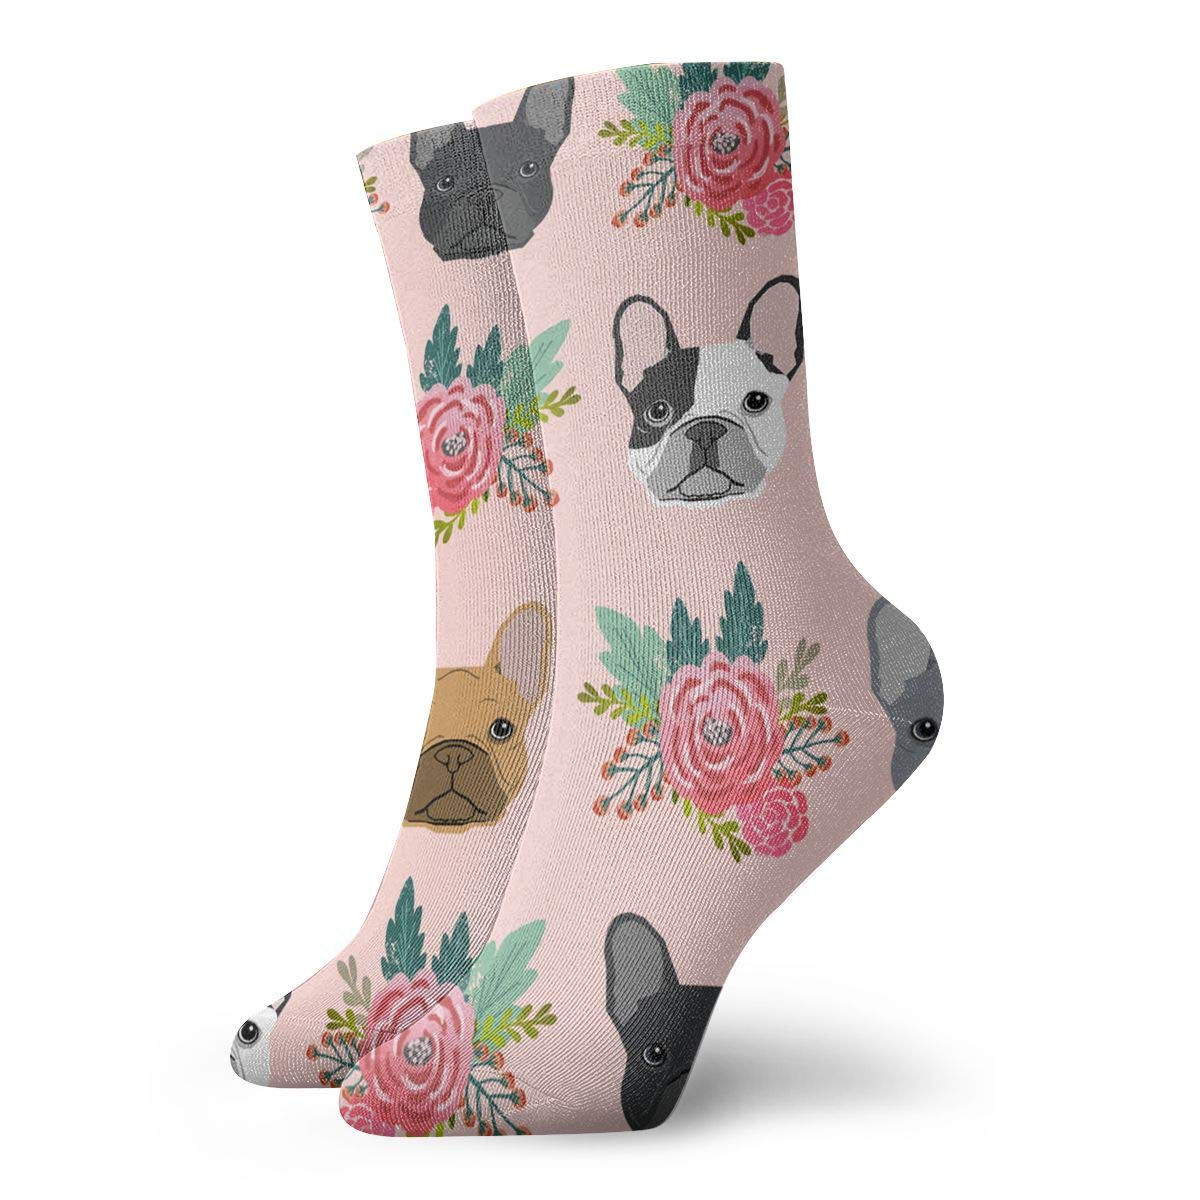 WEEDKEYCAT Pink Florals French Bulldog Pattern Adult Short Socks Cotton Sports Socks for Mens Womens Yoga Hiking Cycling Running Soccer Sports